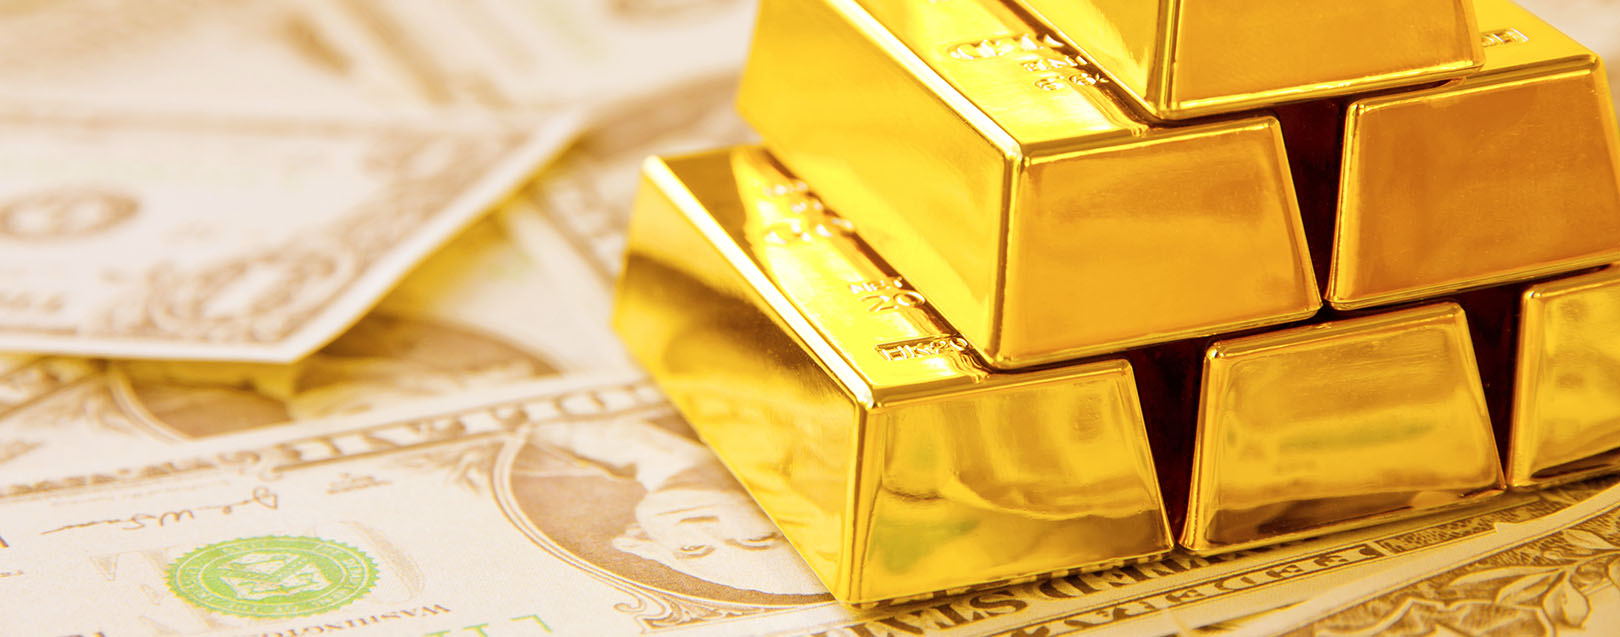 Gold prices are likely to remain stable: ASSOCHAM paper